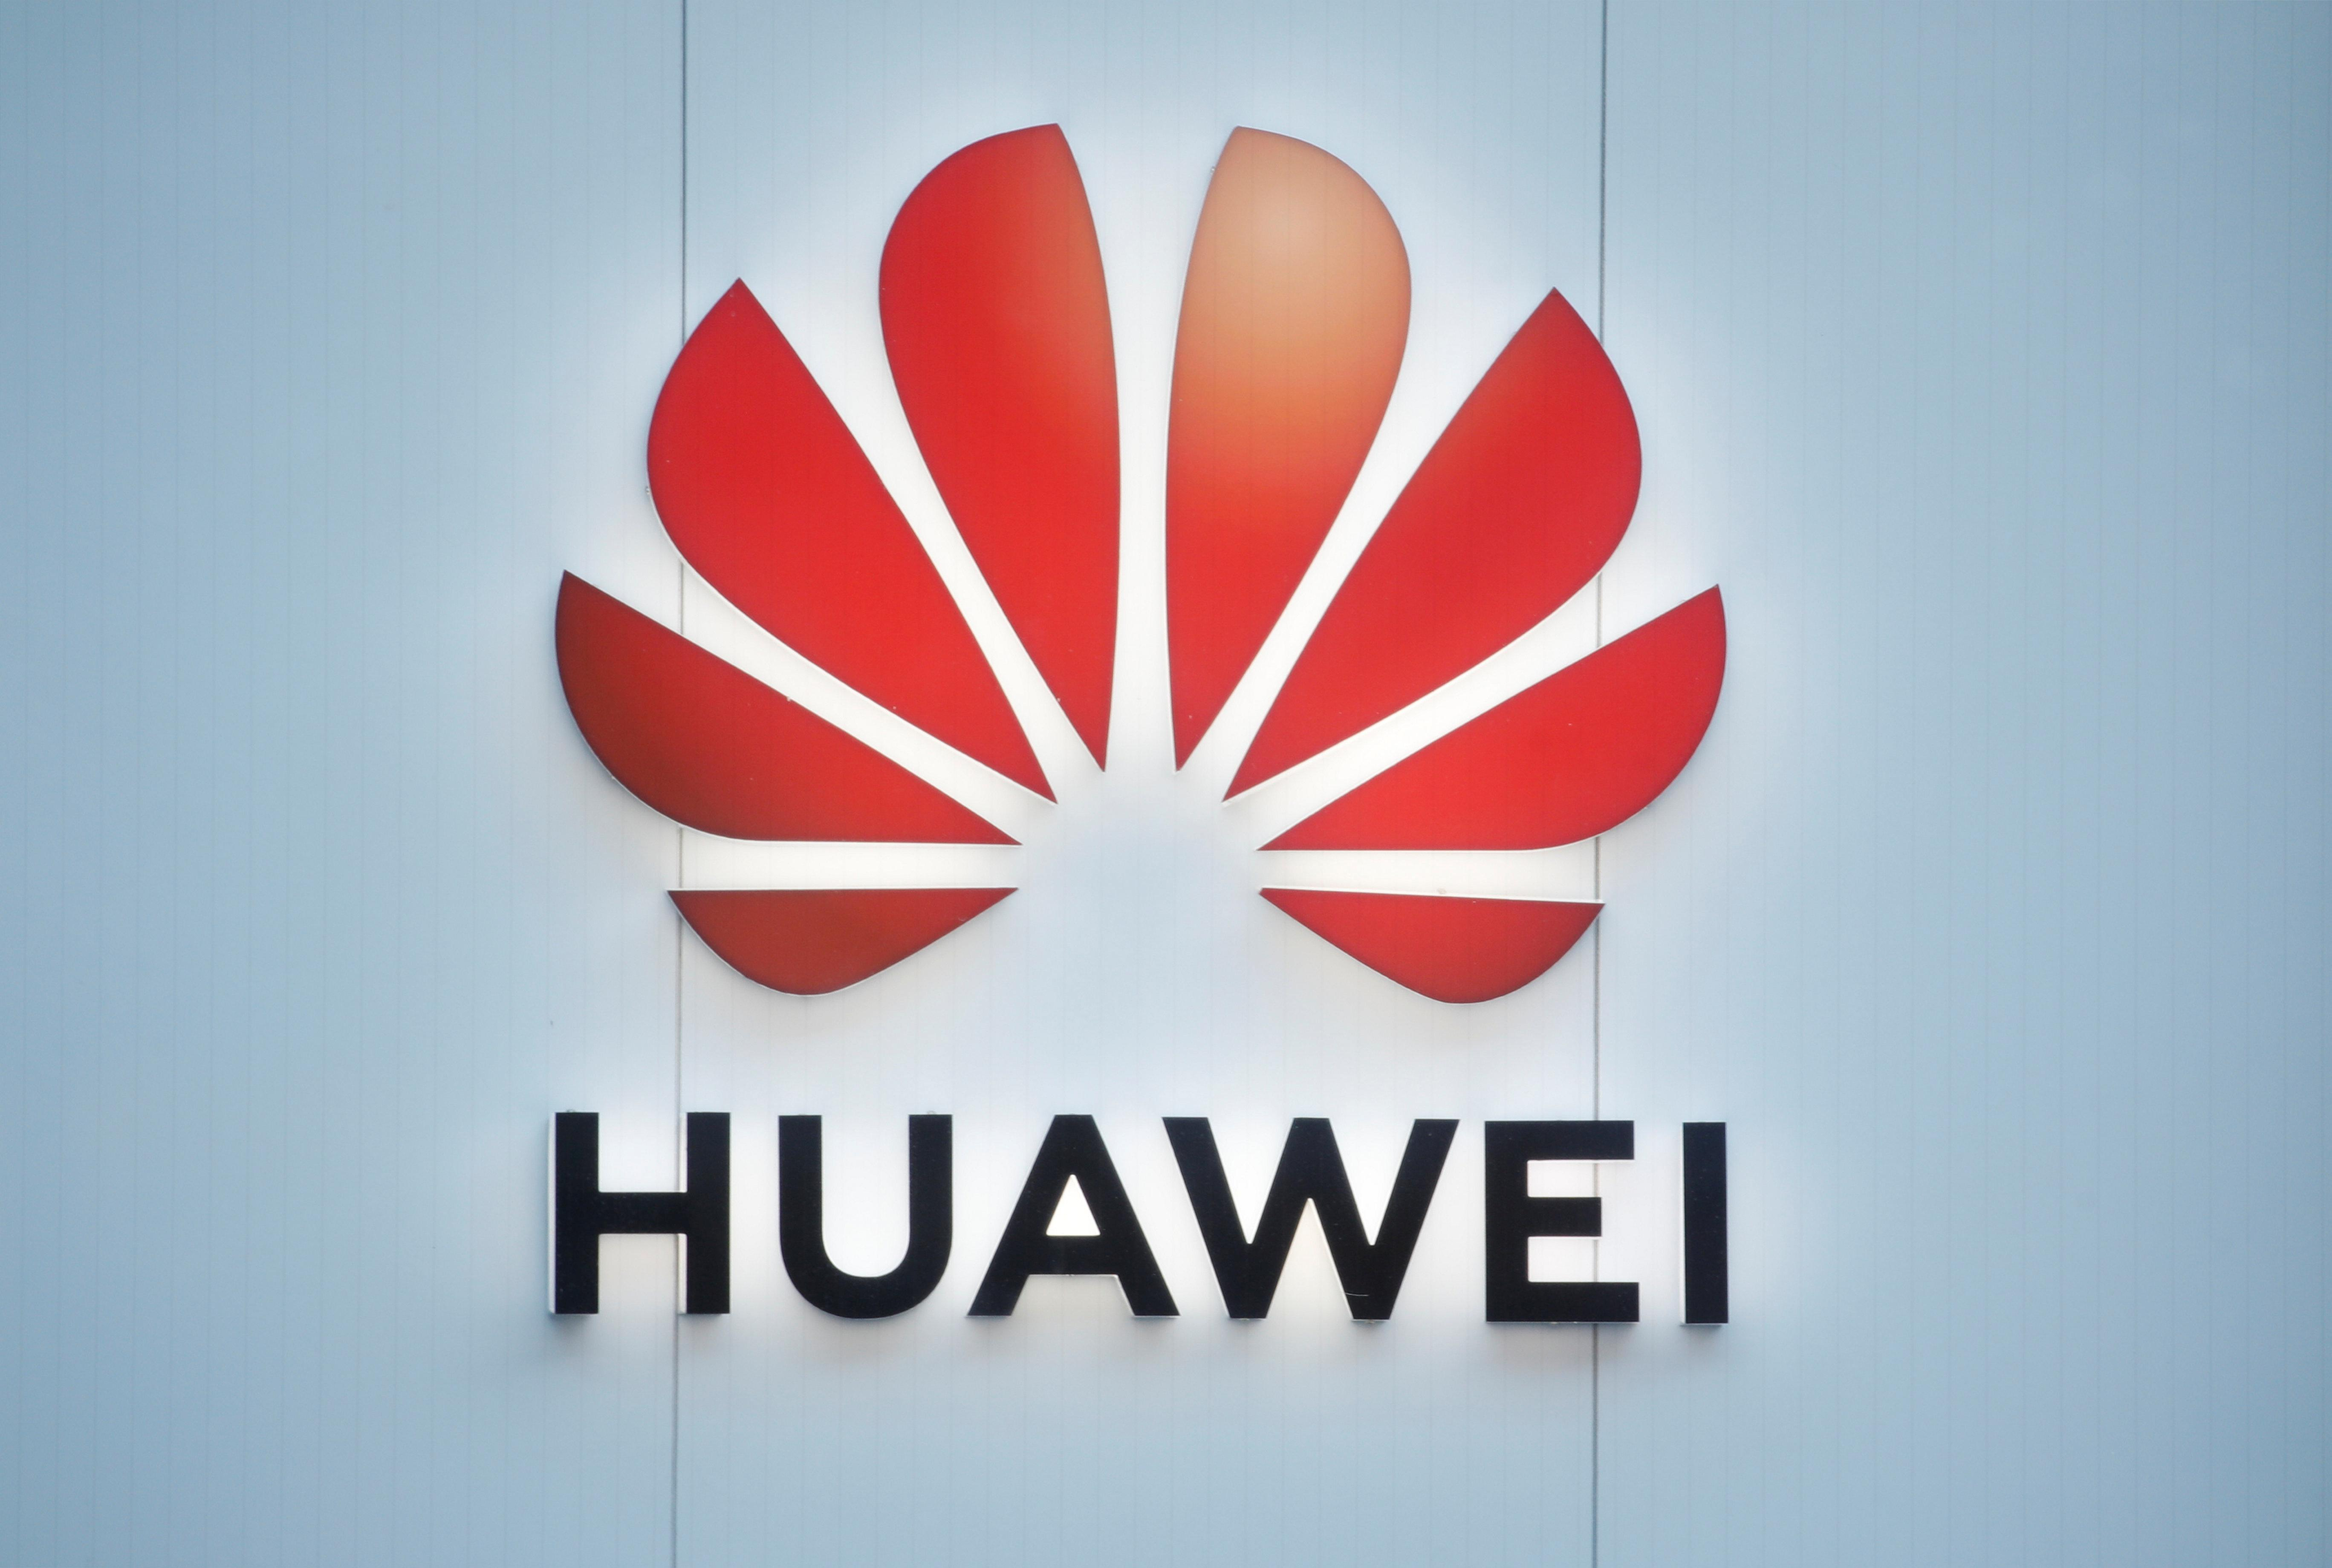 Explainer: As Britain decides, Europe grapples with Huawei conundrum